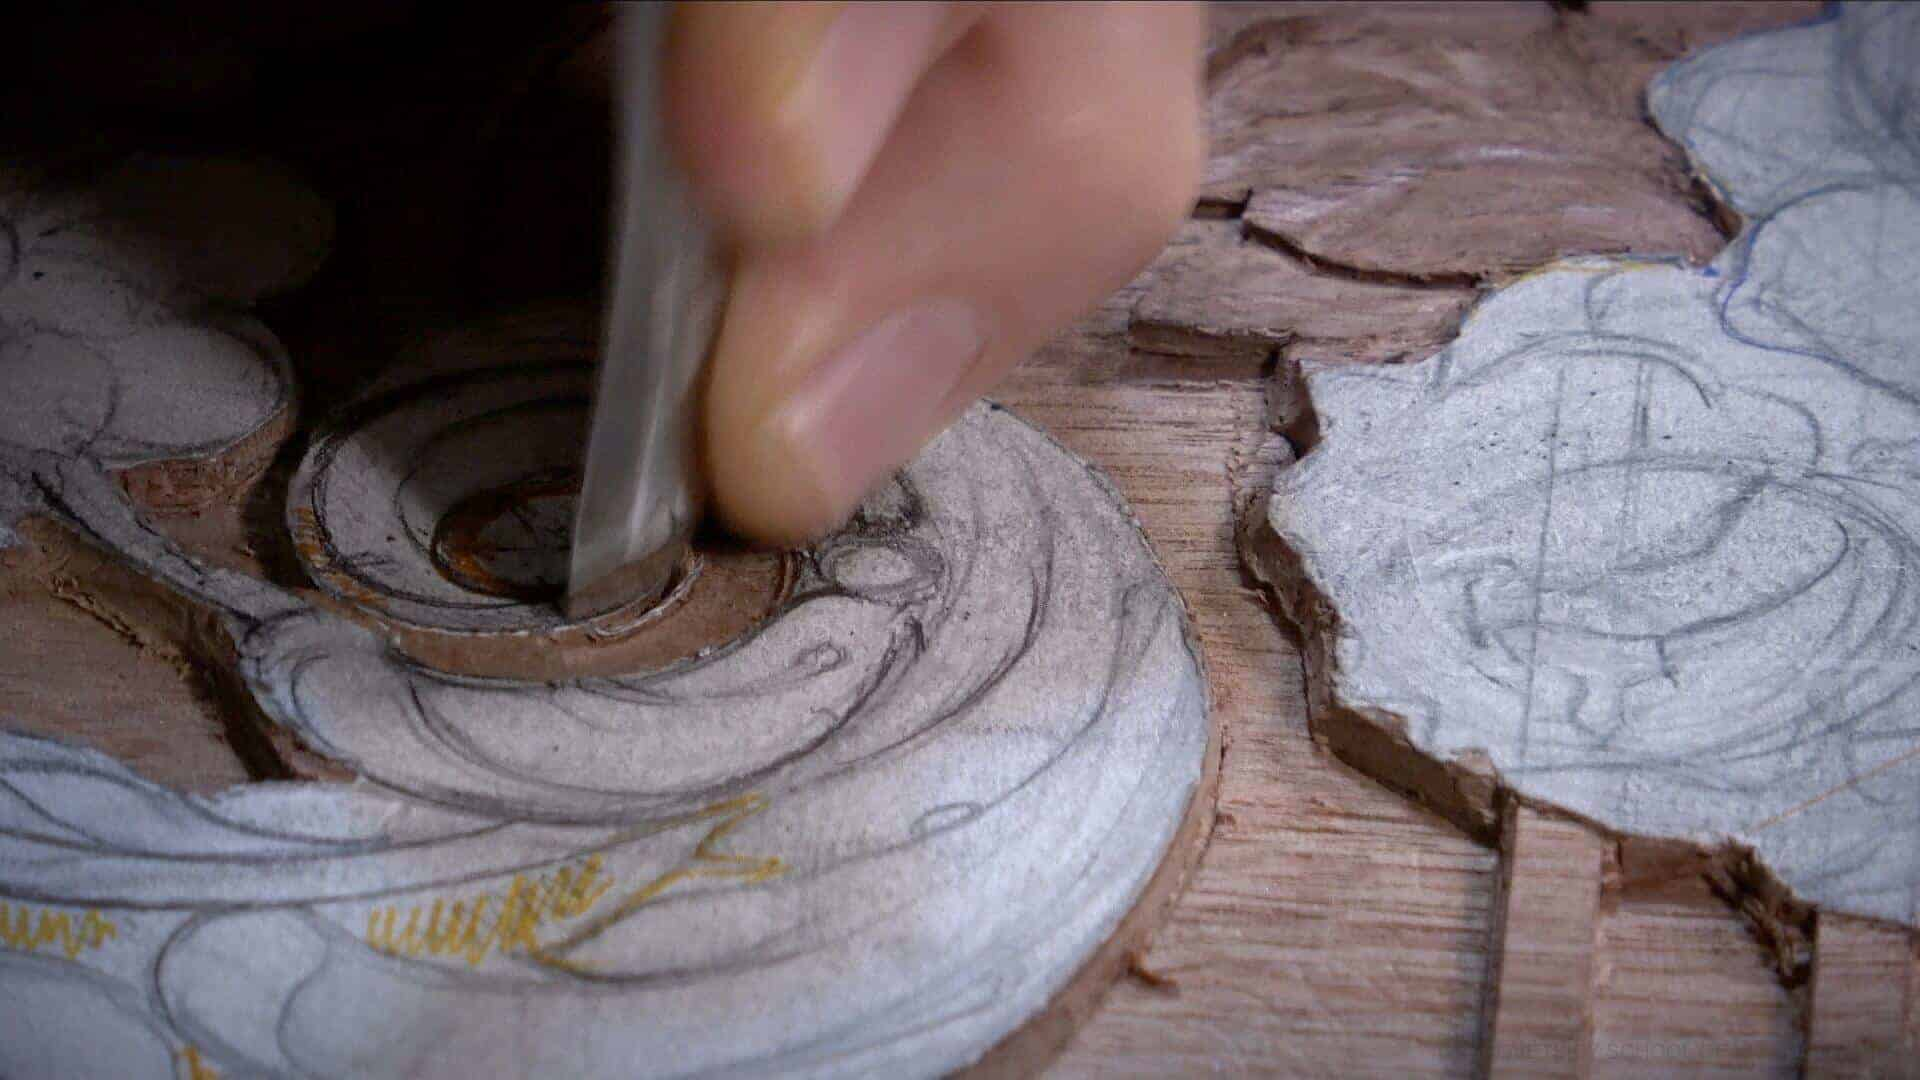 """From Designing to Carving - Learn To Carve Late 18th Century Style Furniture Panel - Woodcarving School Online with Alexander Grabovetskiy. @grabovetkiy #woodcarving #woodworking Woodcarving Video Workshops. Woodcarving Lessons. Wood Carving Virtual Apprenticeship. Classical Woodcarving Courses online. Low relief Carving for furniture, also known as Flemish or Liège style was very popular from the 16th to 19th century in Belgium-Franch culture. It also migrated to England and was incorporated by Great Furniture makers such as Thomas Chippendale. In this Class we will discover the beauty and beauty and richness of low relief carving. We will learn Design approach to Low relief. - How to make it look very 3d even if it only 1/8"""" (3mm) deep We will learn The Law of Space. - How to emphasize parts of a Design - """"The Big Idea"""" position in Space The Law of Main Movement - How to be """"on the same page"""" with the Human Brain. Baroque diagonal vs Sinister diagonal in Artistic Design. The Law of Armature- How to Structure overall Design and be """"Kosher"""" (clean) in it. The Law of Golden Ratio - How to implement Fibonacci Sequence - the Art Secret for Pleasing Human eye The Law of Arabesque - How to implement Natural Flowing Movements in Design The Law of Rhythm in Design. How to apply what is known to the Music world to Design for Wood Carving. Carving process of Low relief. - Special Techniques of Low Relief Carving… Yes, it is much different from normal woodcarving. Sharpening Wood Carving Tools- How to sharpen Your Tools without wasting valuable time. By the Way. Low relief carving is not limited to furniture and cabinetmaking world. There is no limit of what You can do with this style of wood carving."""